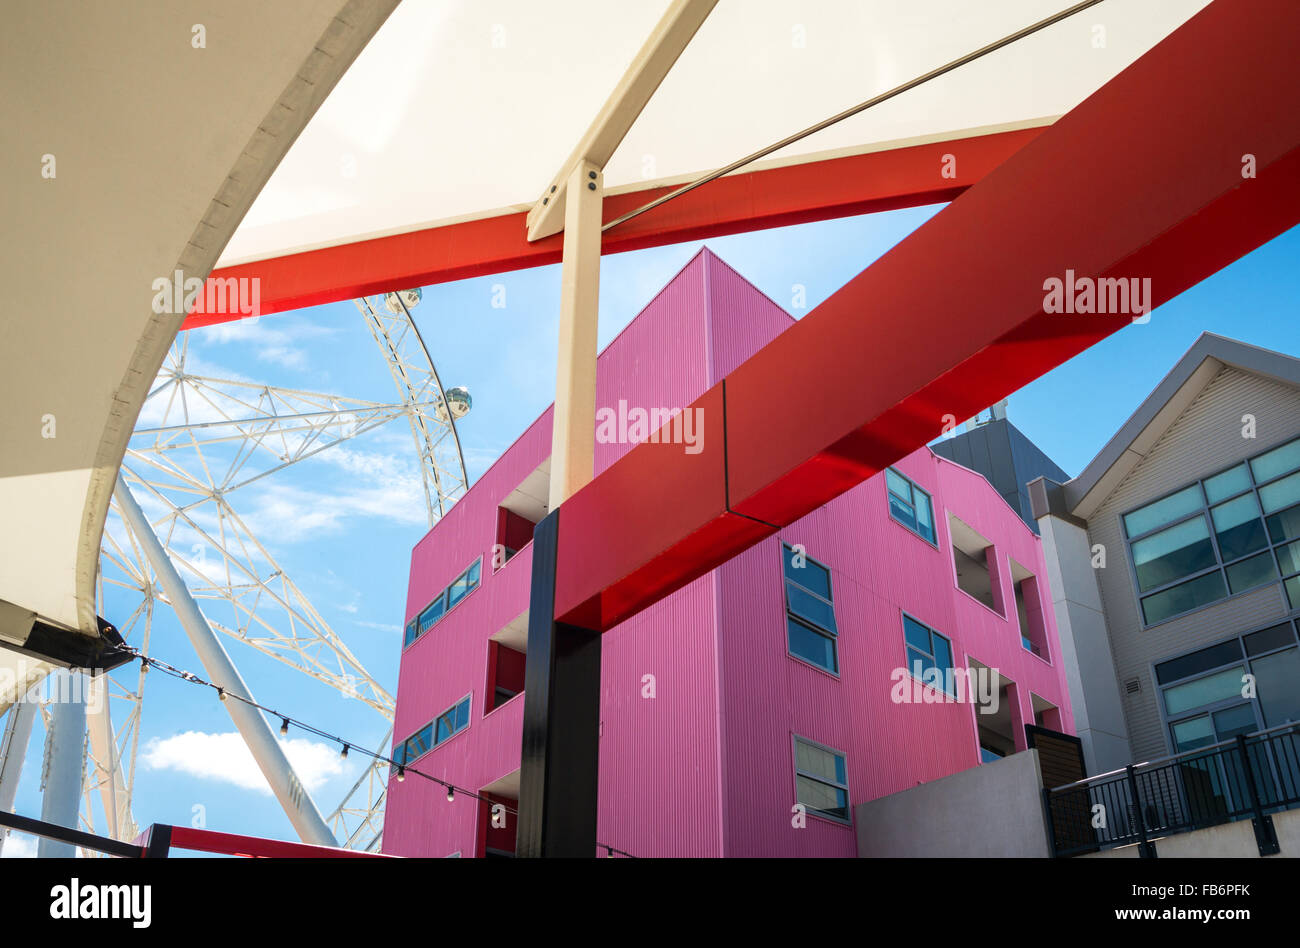 Australia, Melbourne, architectures of the Harbour Town of the Victoria Harbour - Stock Image